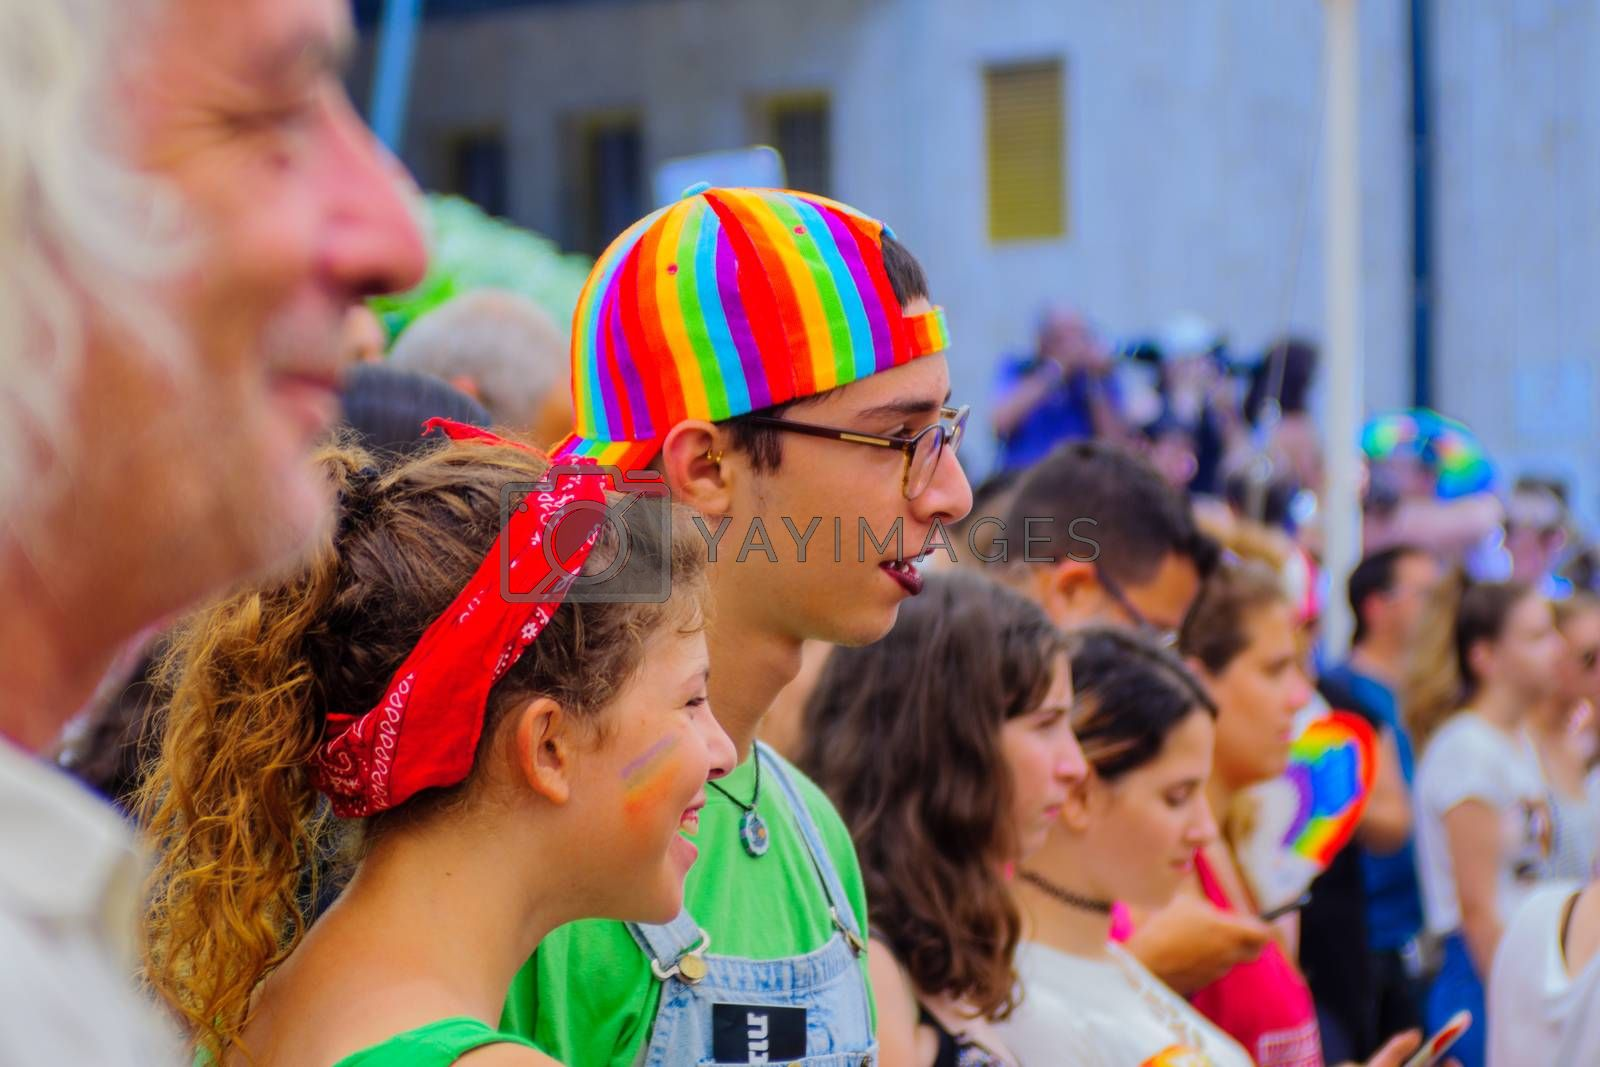 HAIFA, Israel - June 30, 2017: Participants in the annual pride parade of the LGBT community, in the streets of Haifa, Israel